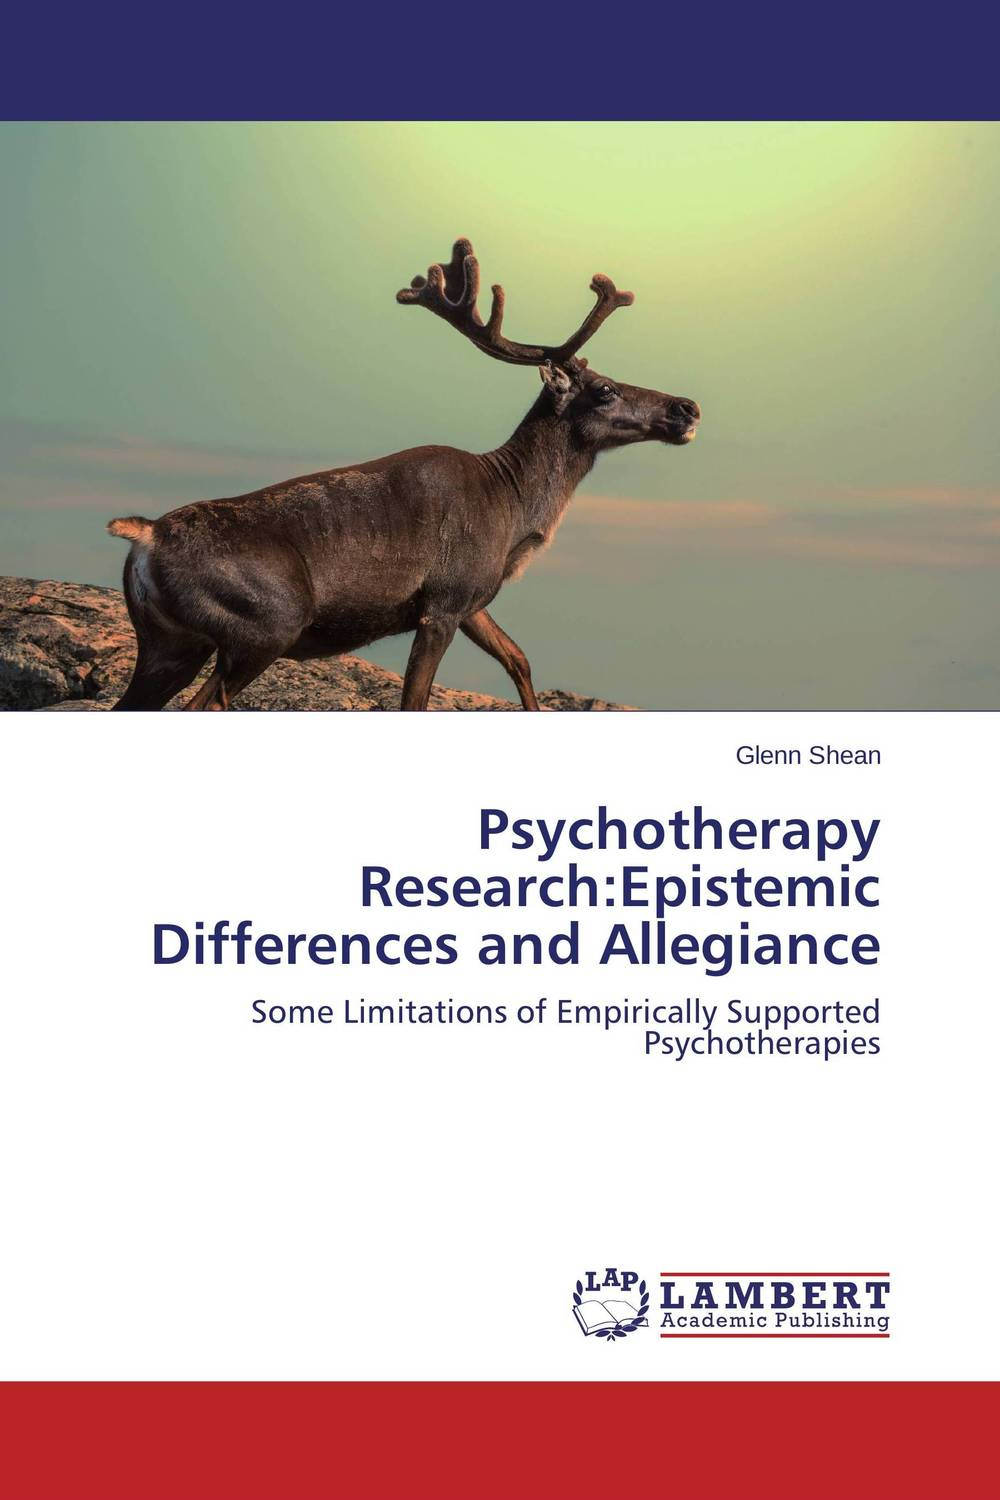 Psychotherapy Research:Epistemic Differences and Allegiance equine facilitated learning psychotherapy existential ipa research